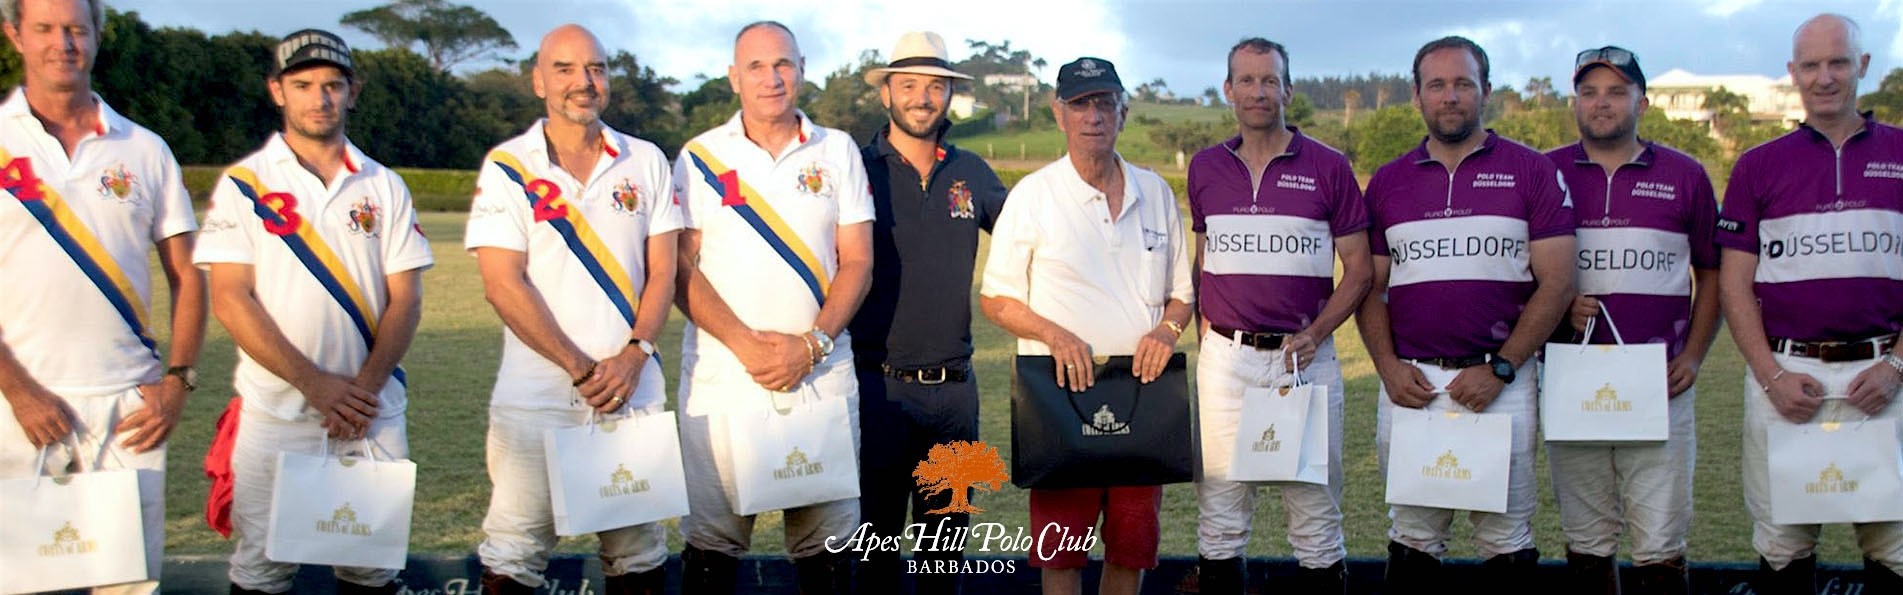 Slide-2-Barbados-polo-club-luxurypolo